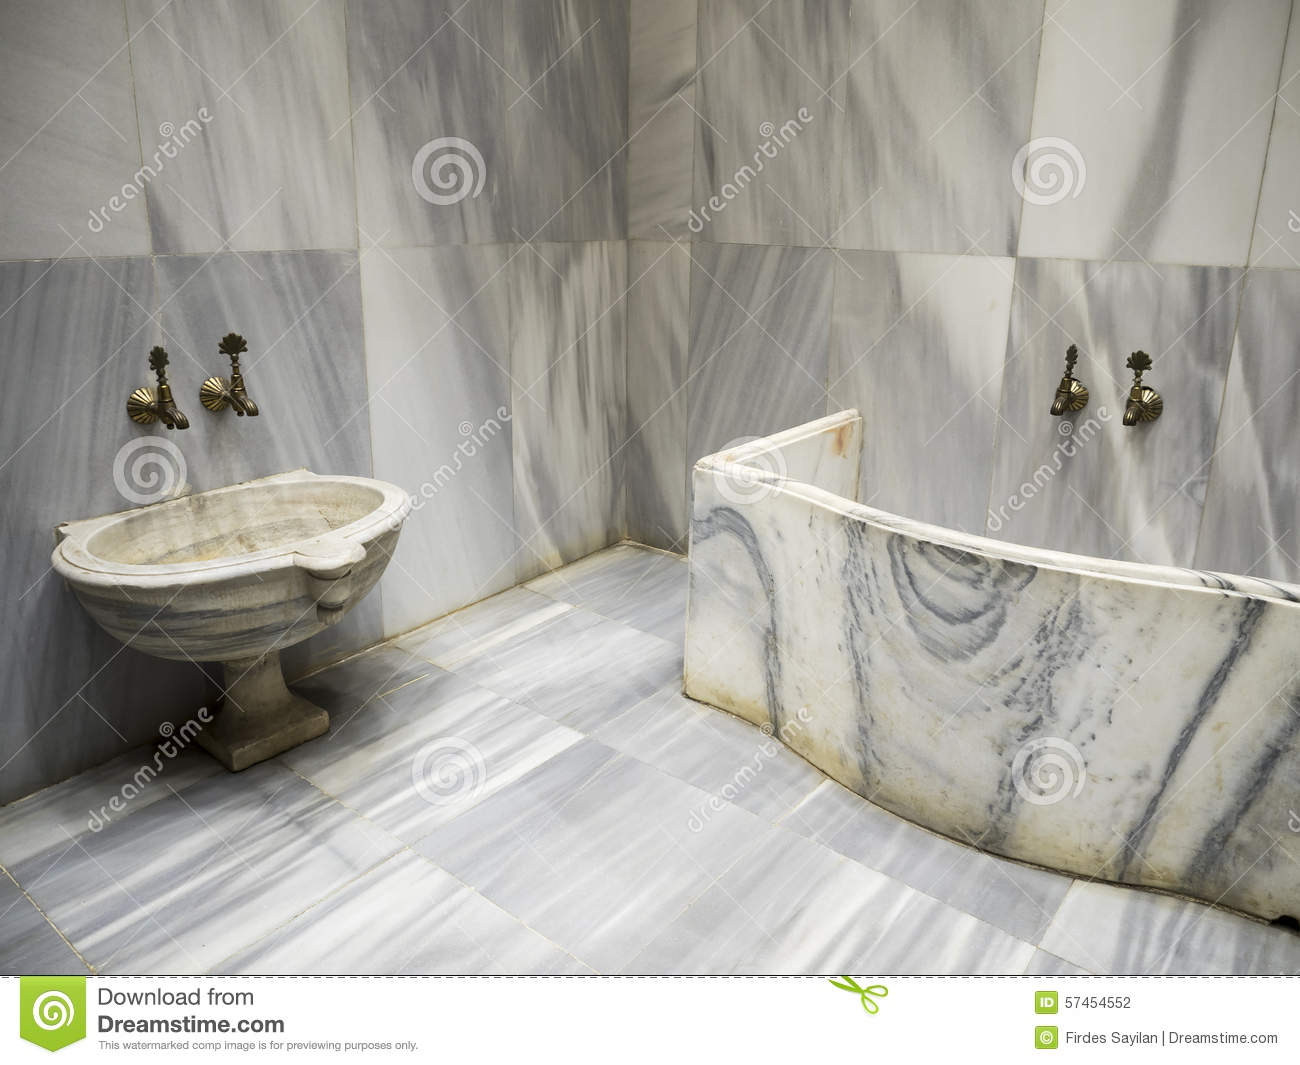 Wash Bowl In Bathroom – Hammam Stock Photo - Image of eastern ...